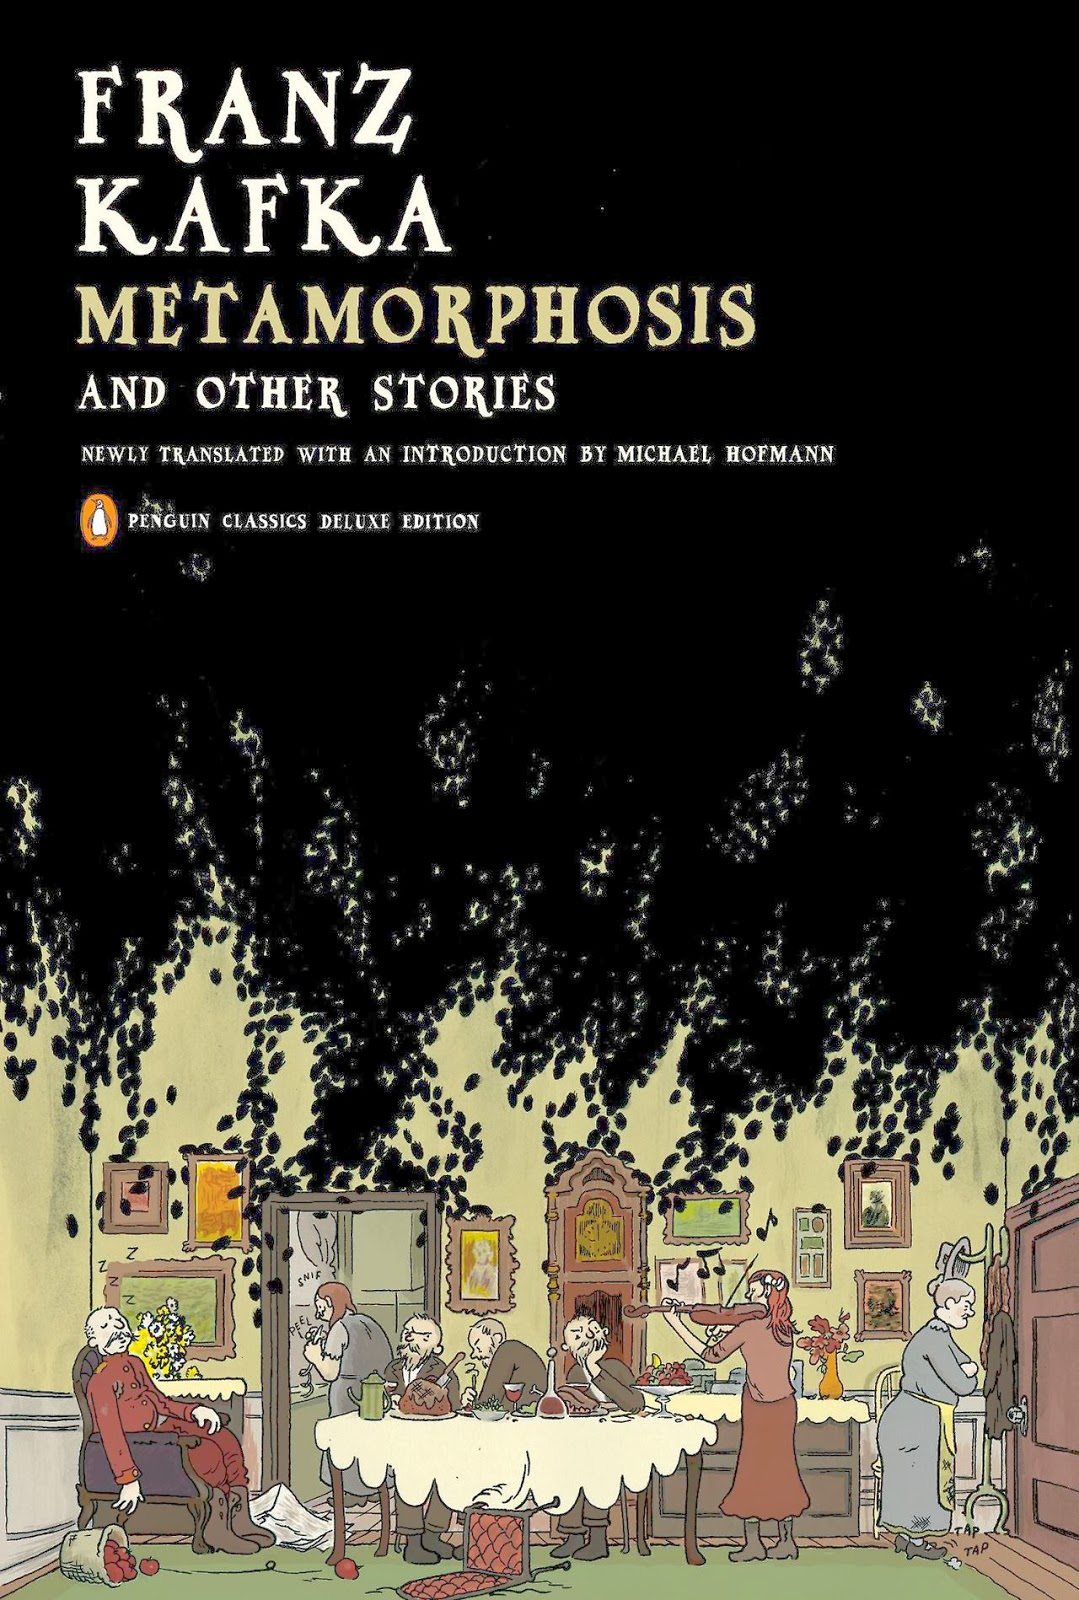 The final four pages of the metamorphosis by franz kafka